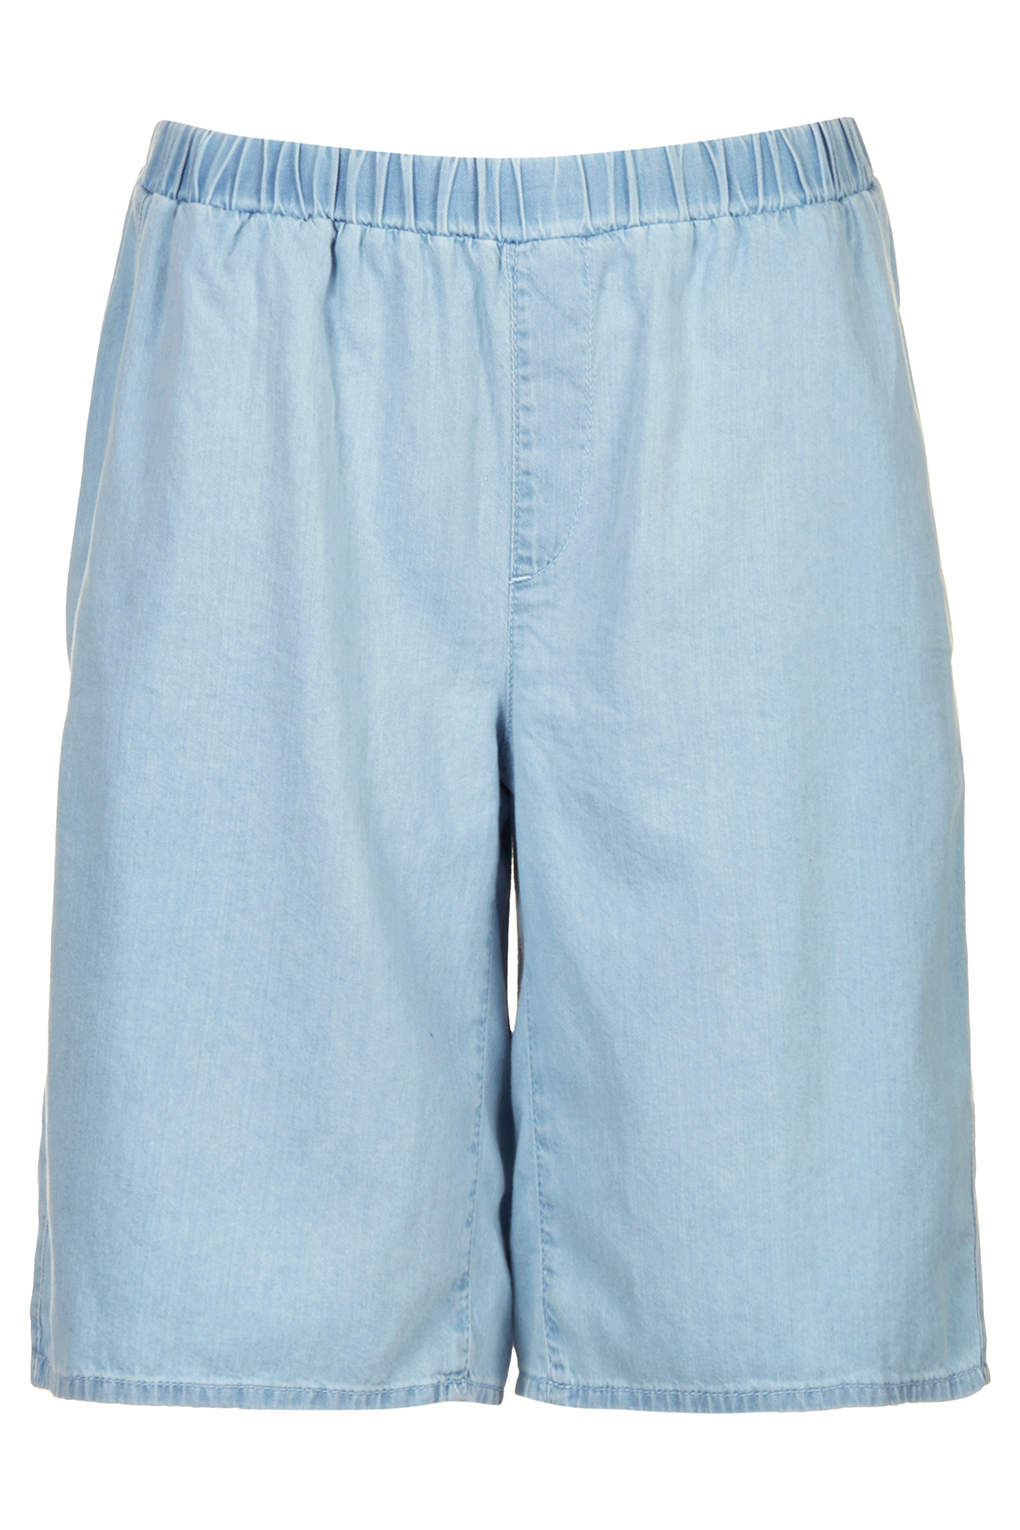 Topshop womens moto bleach denim culottes bleach stone in for Womens denim shirts topshop